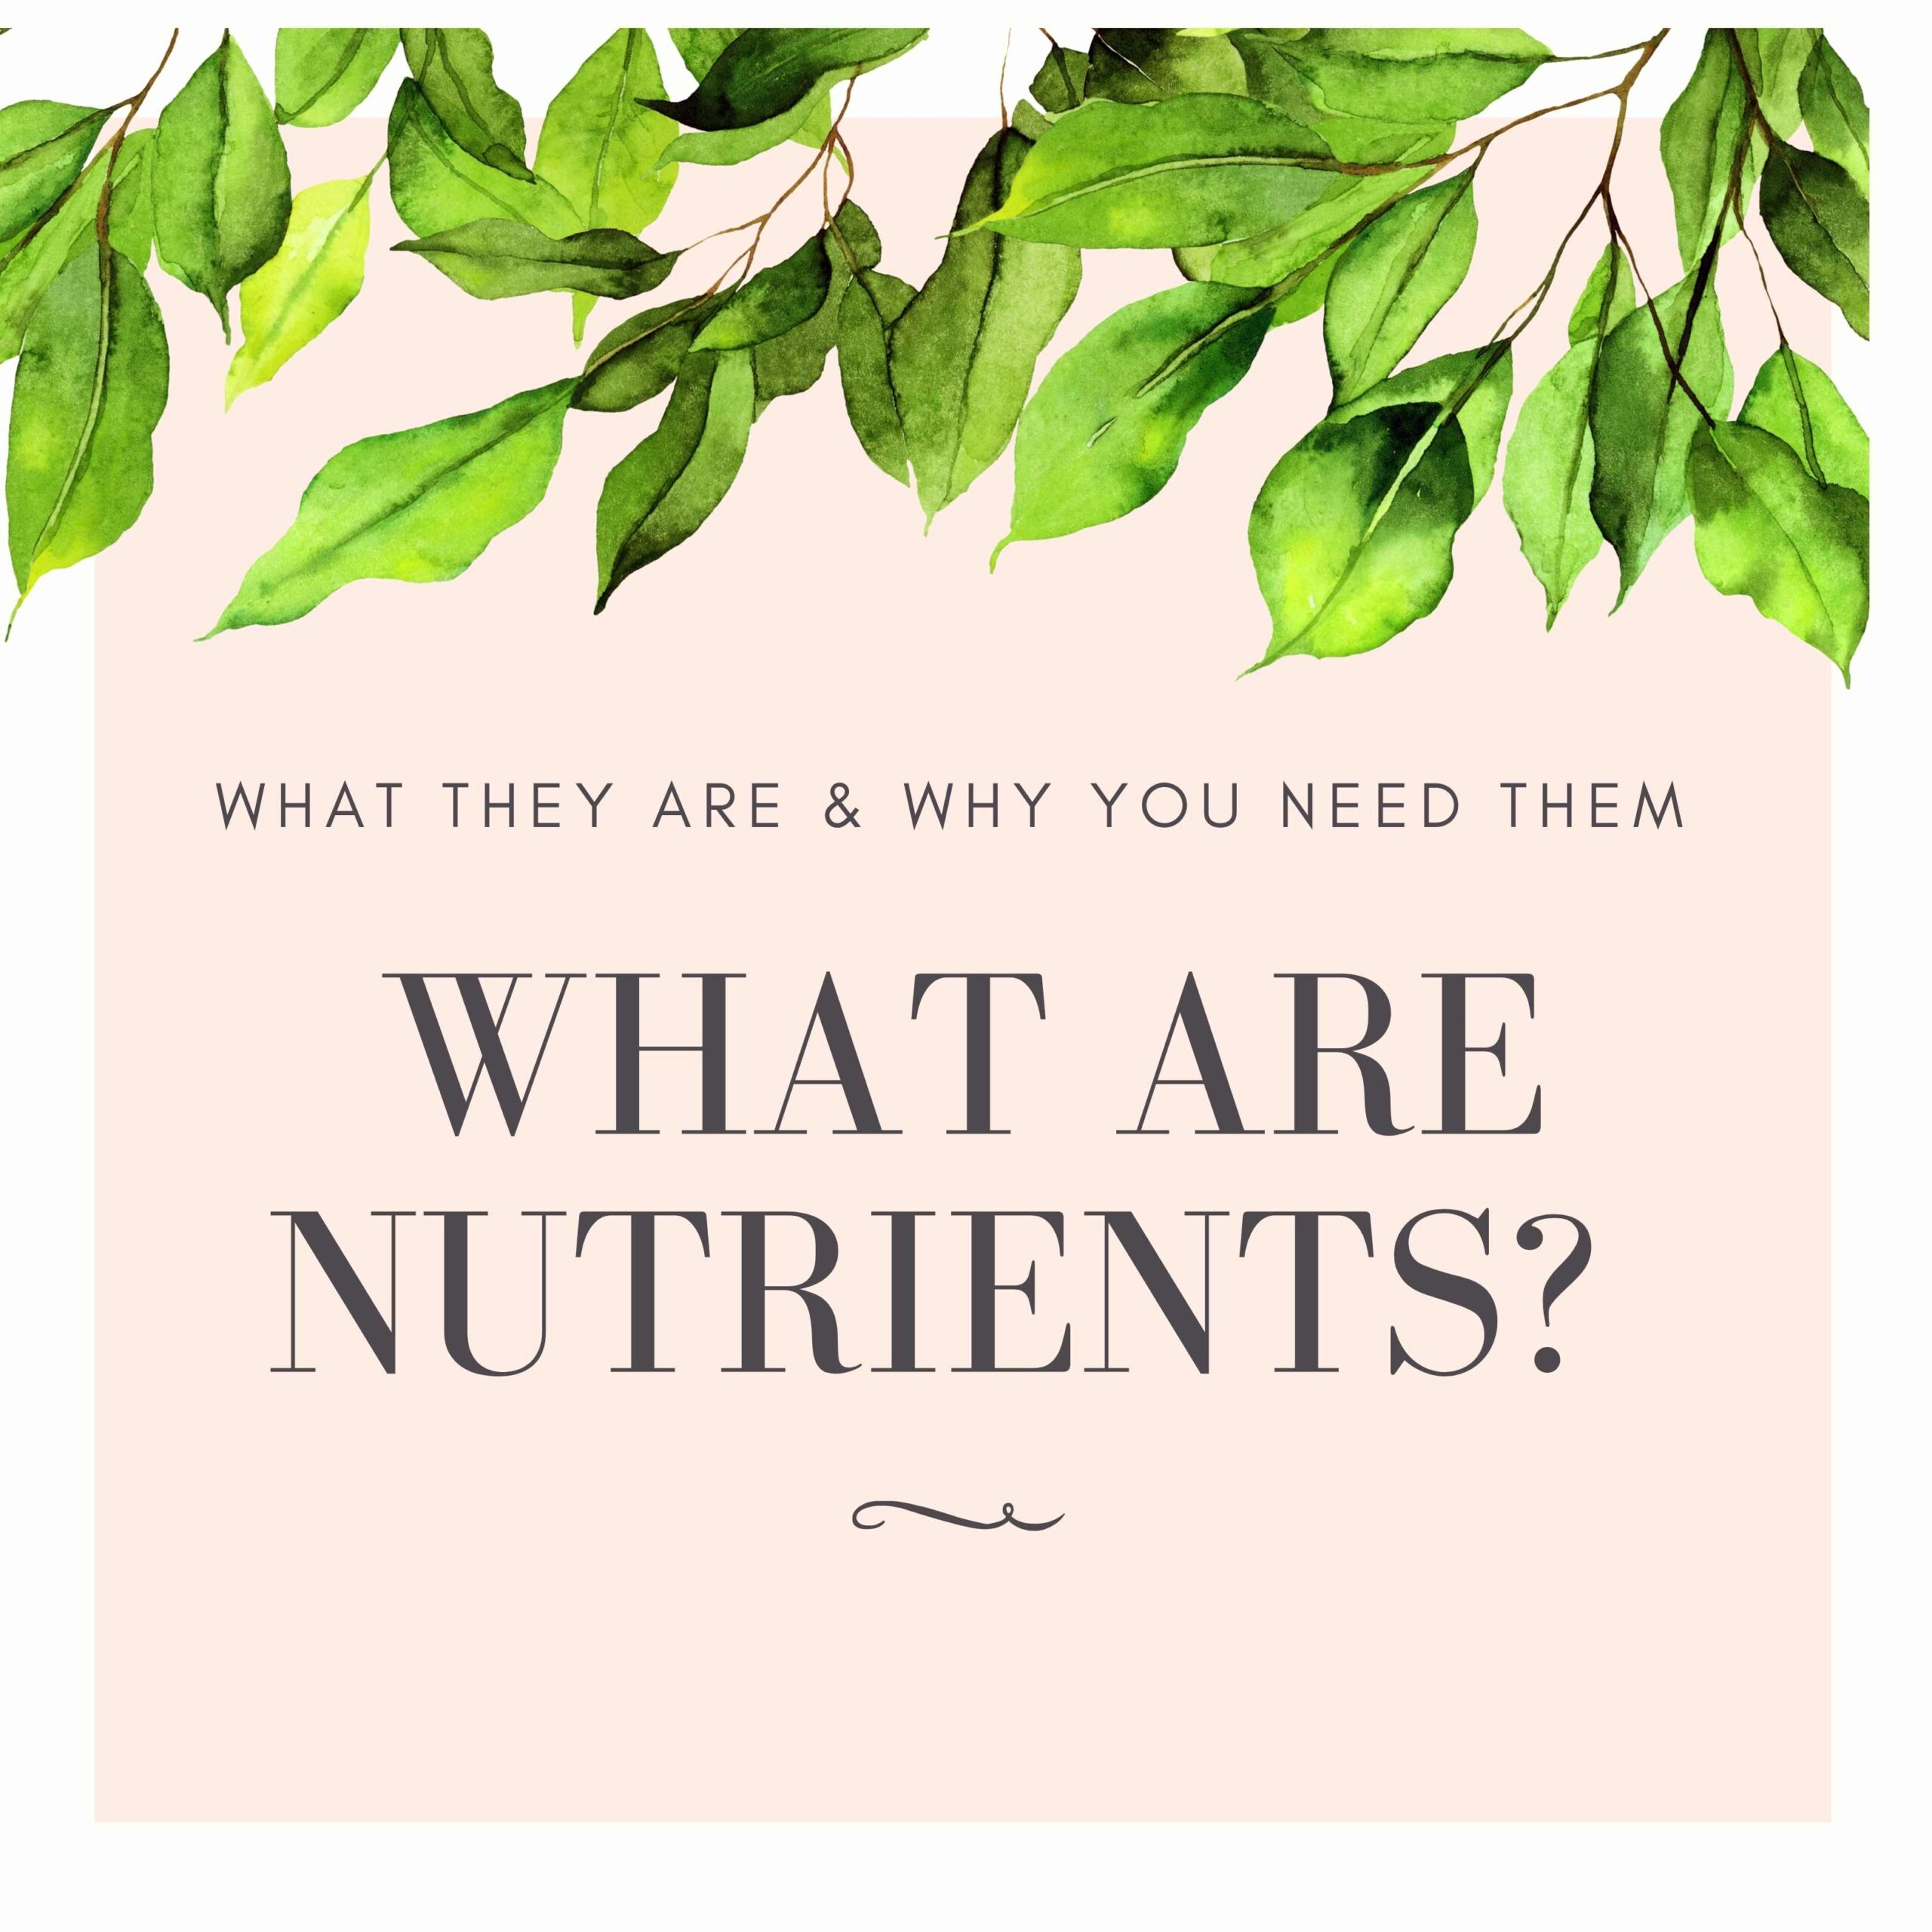 nutrients, national nutrition month, nutrition. the healthy life foundation